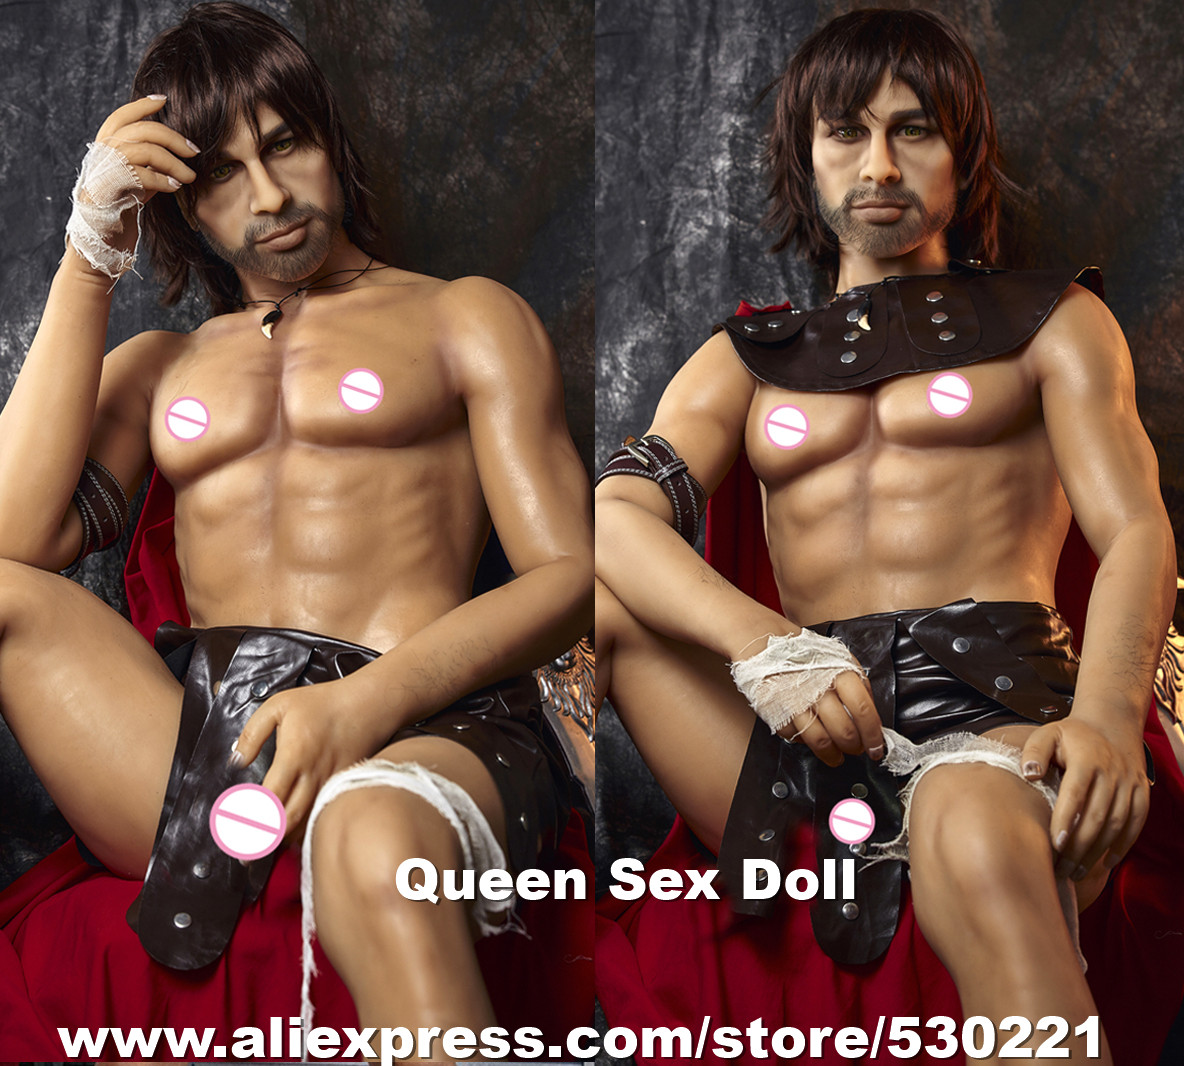 NEW <font><b>162cm</b></font> Gay Male Sexy <font><b>Doll</b></font> Real Silicone Male <font><b>Sex</b></font> <font><b>Dolls</b></font> For Men And Women Big Penis Adult <font><b>Doll</b></font> Dildo image